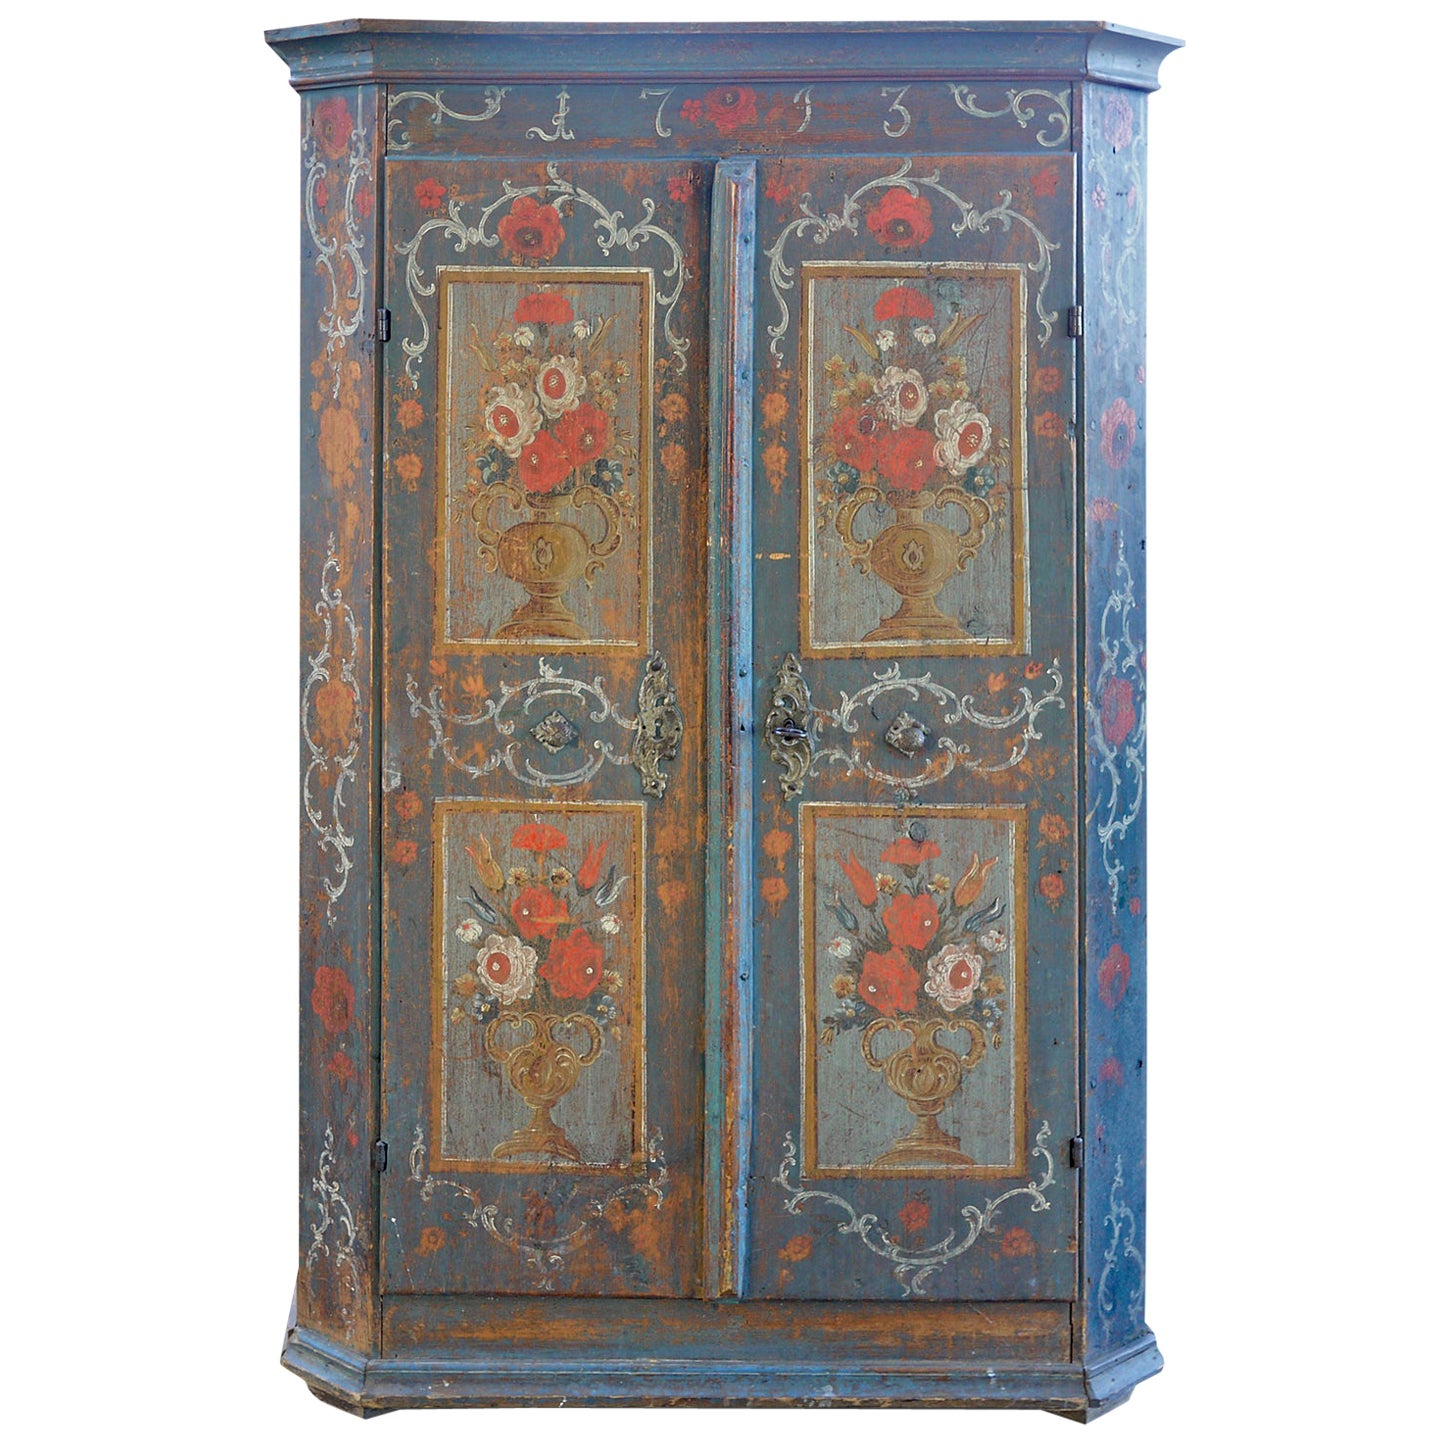 Exceptional 18th Century Tyrolean Blue Floral Painted Wardrobe, 1793